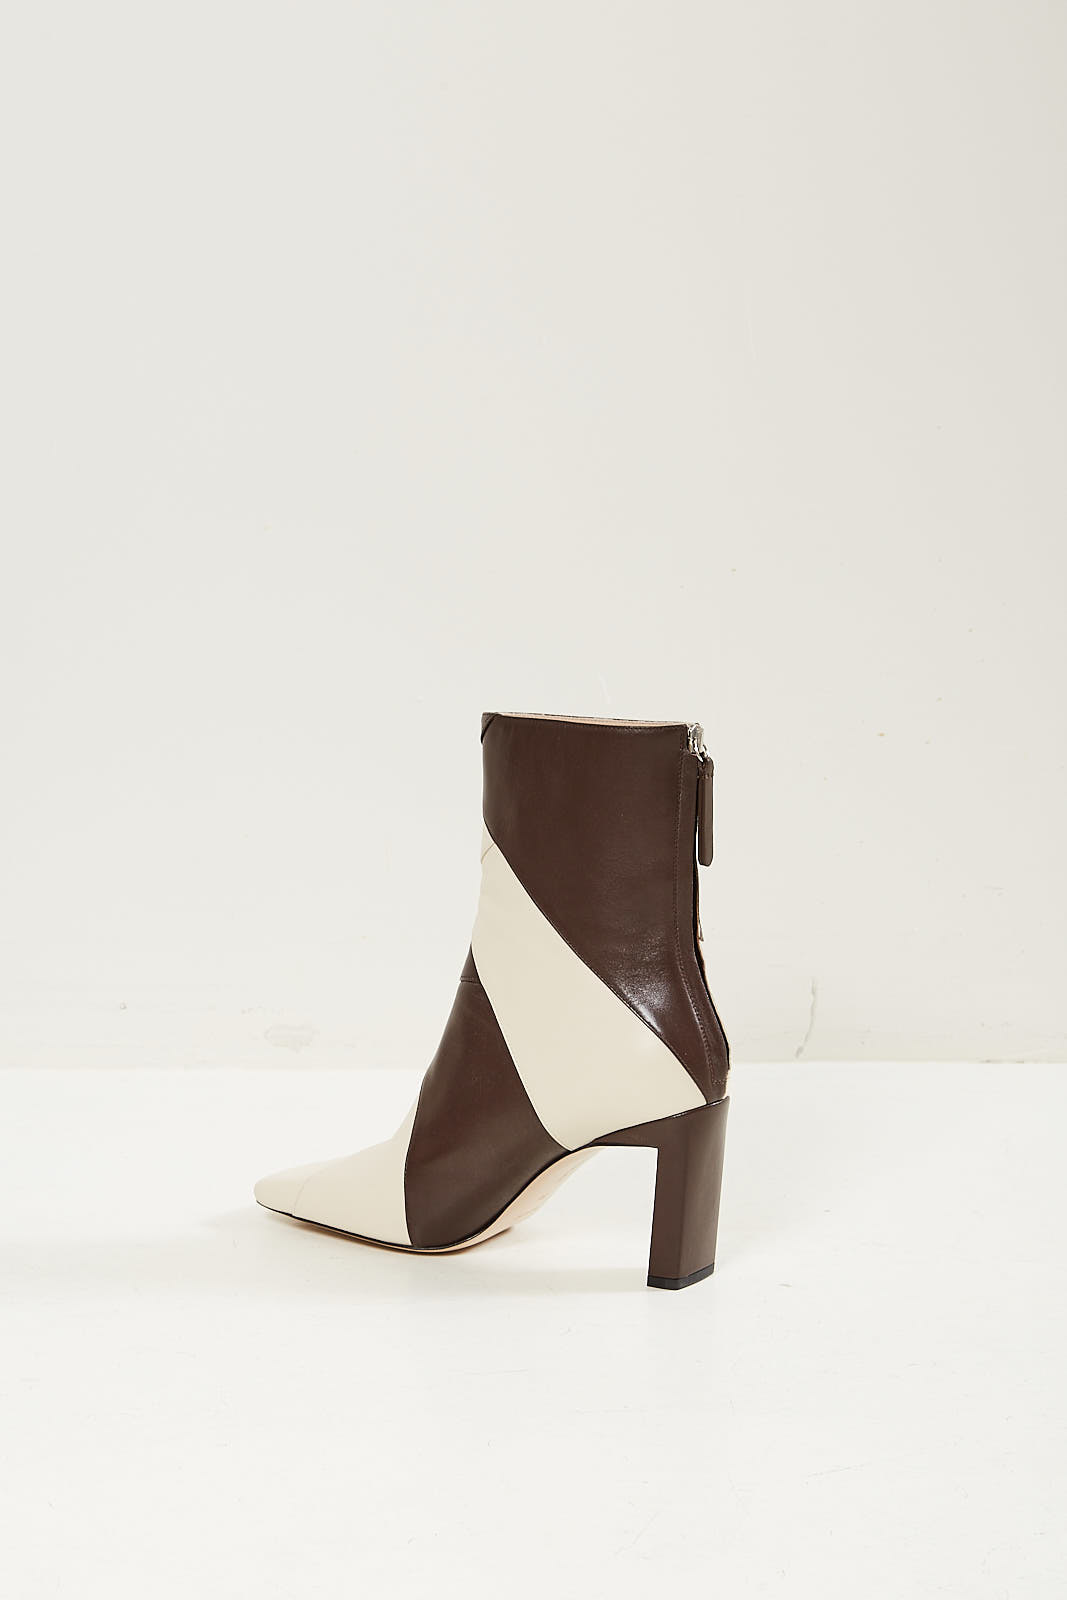 Wandler - isa short leather boot